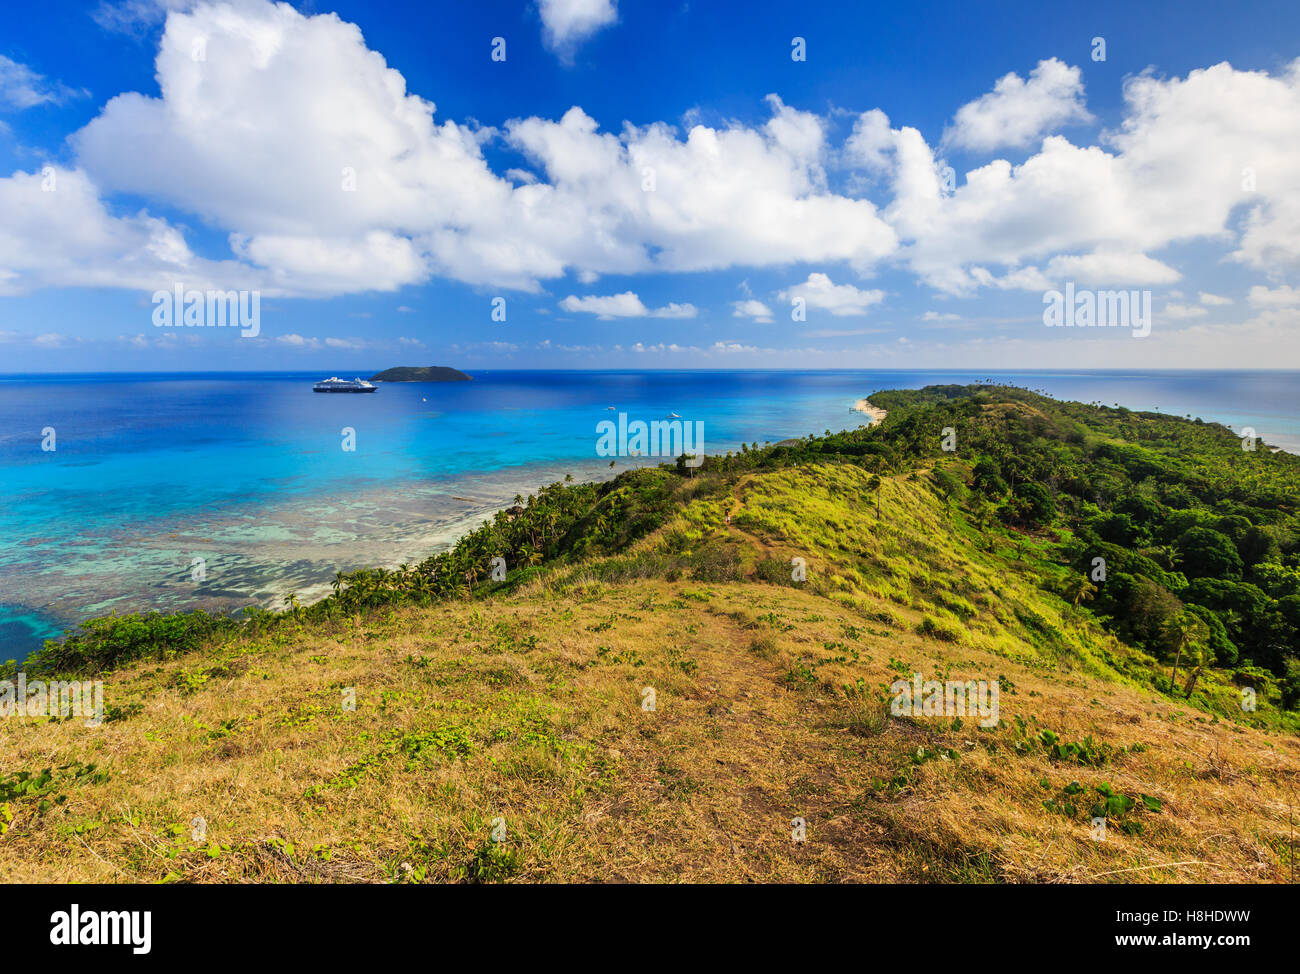 Dravuni Island, Fiji. Panoramic view of the island in the South Pacific ocean. - Stock Image